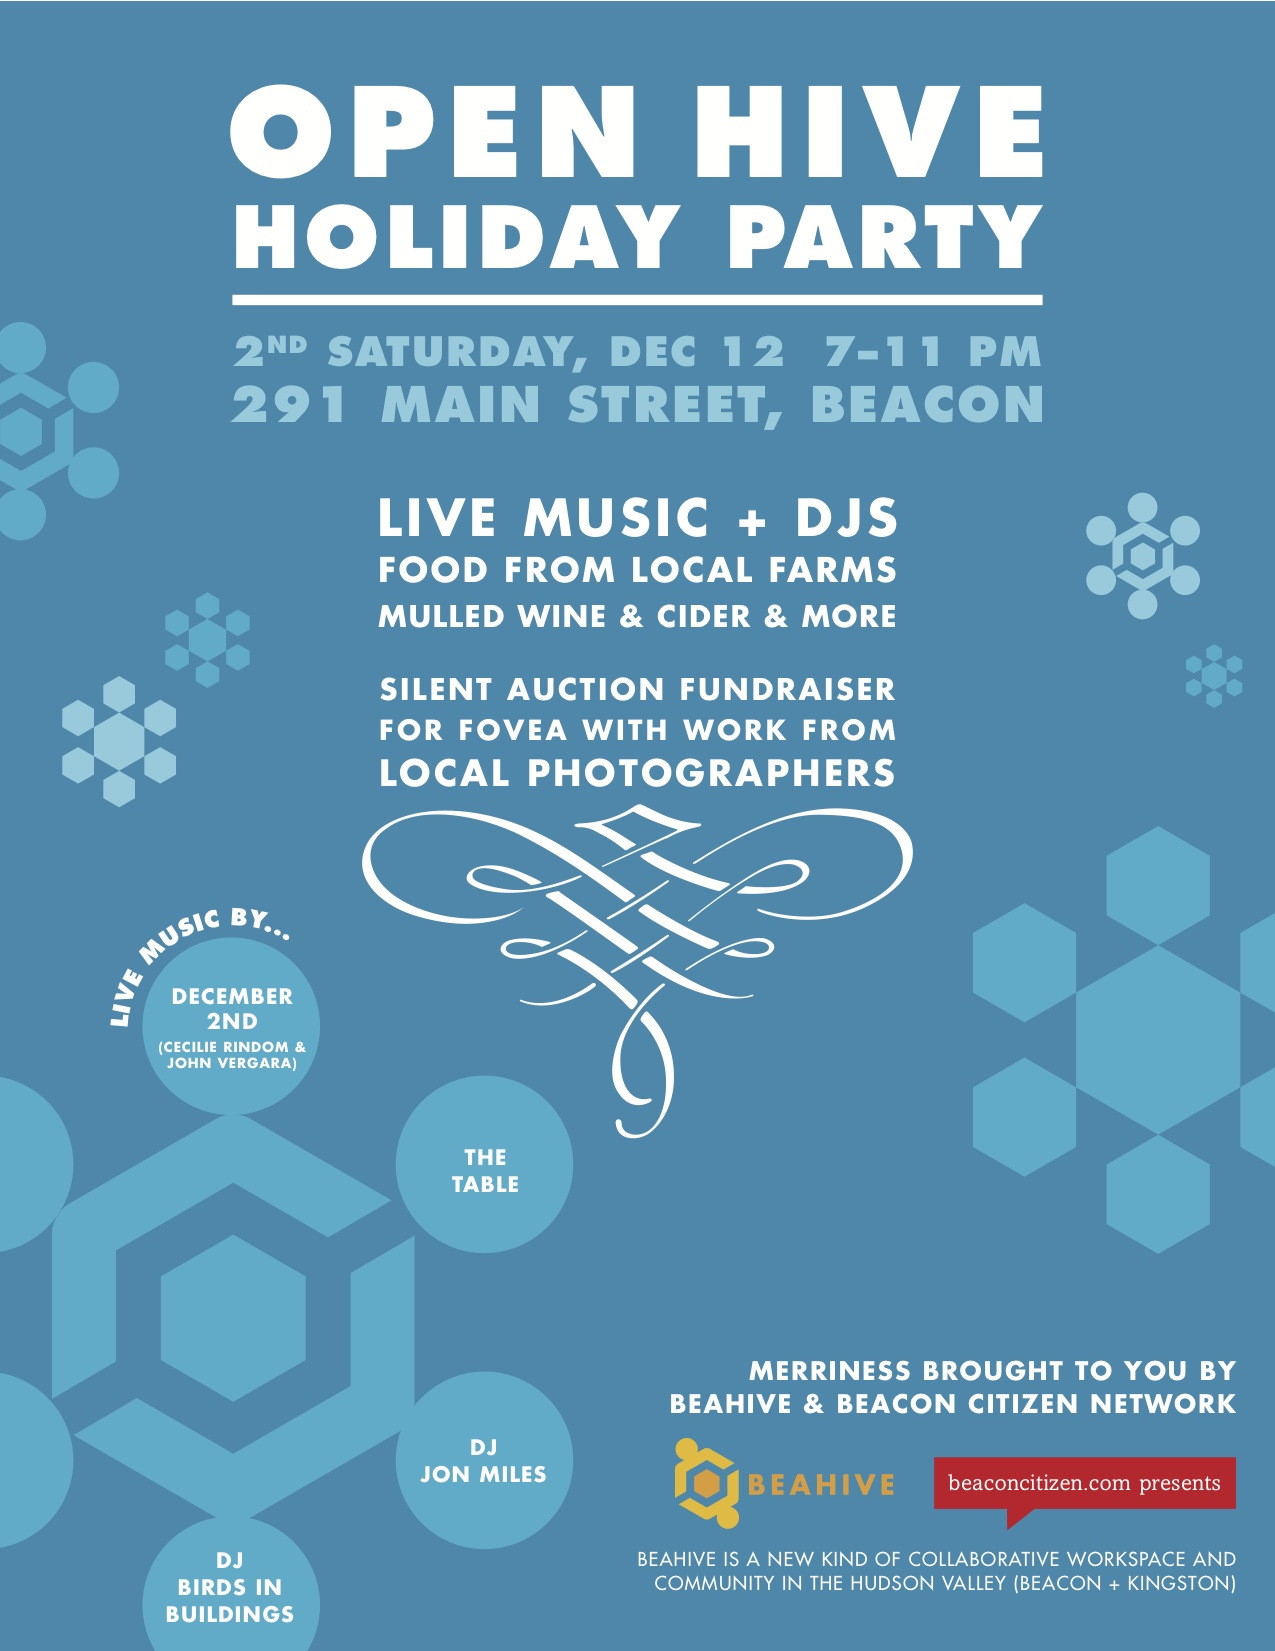 OPEN HIVE Holiday Party